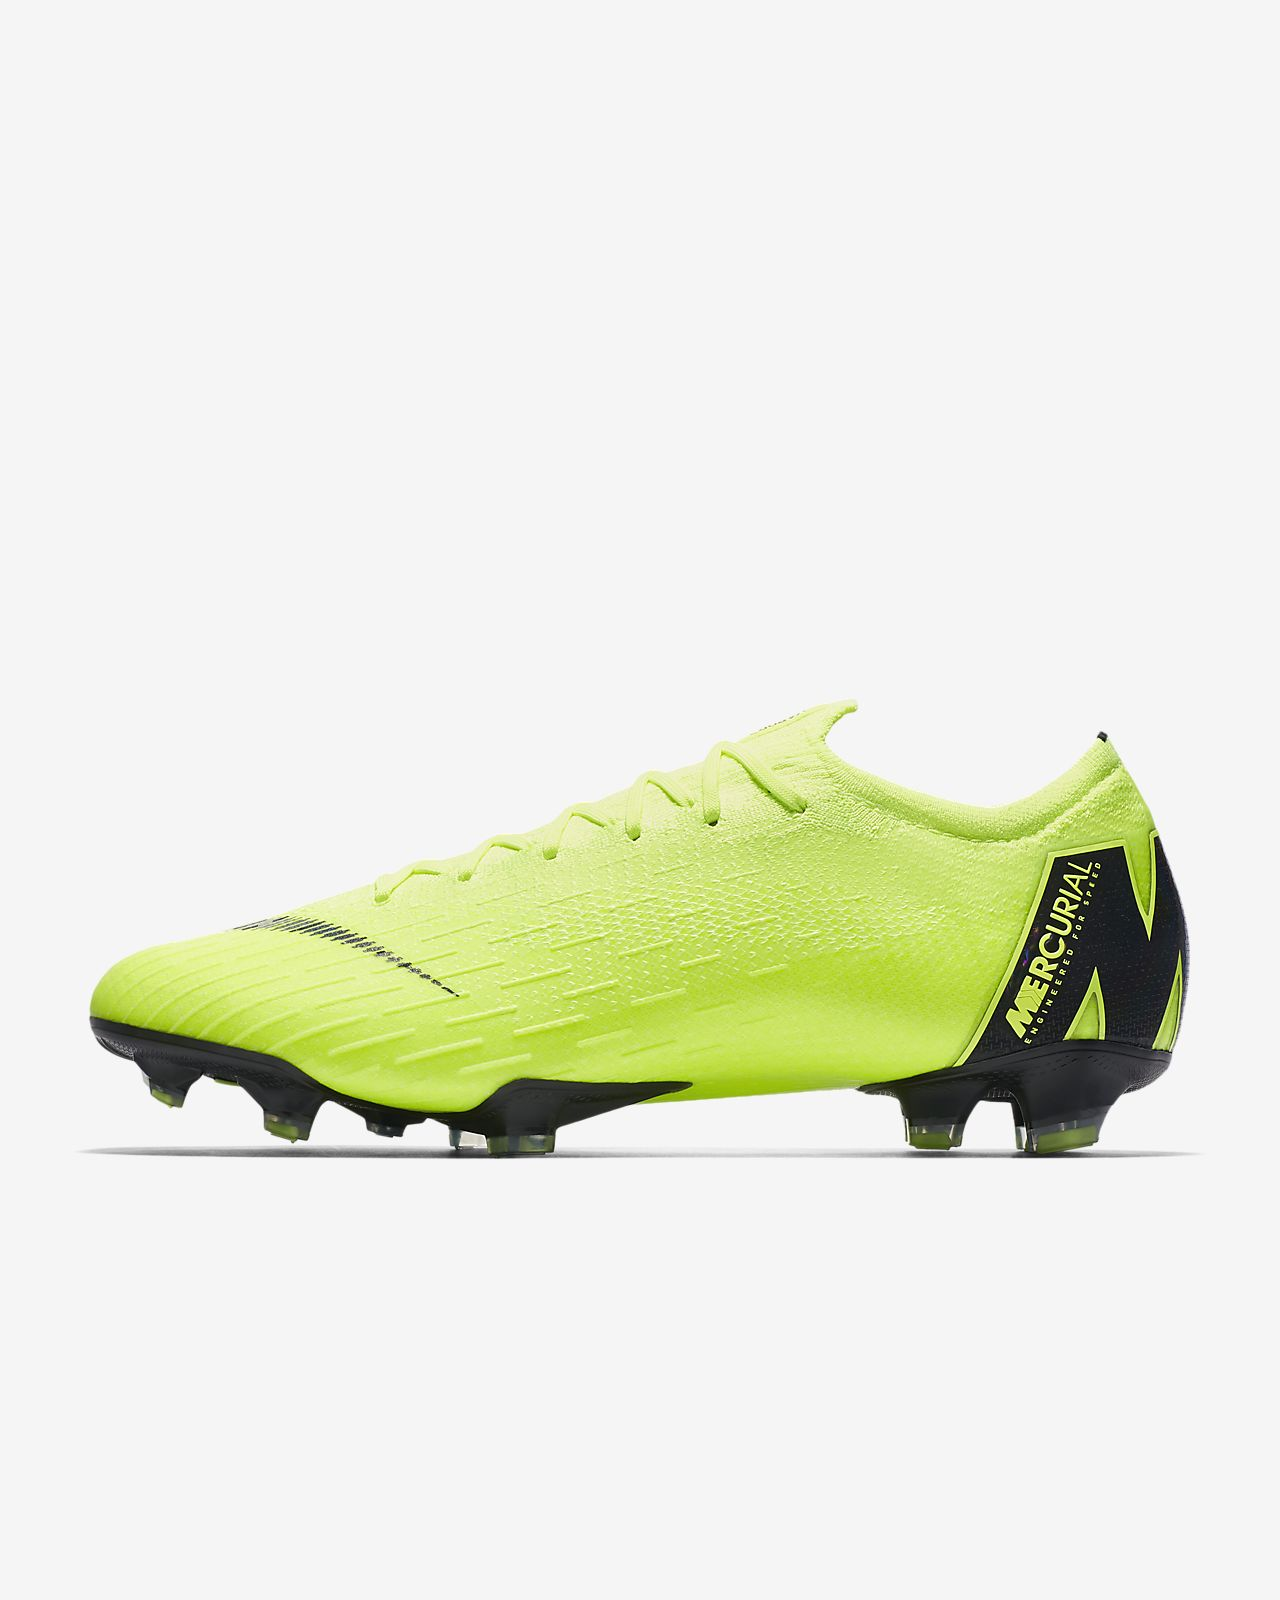 Nike Vapor 12 Elite FG Firm-Ground Soccer Cleat